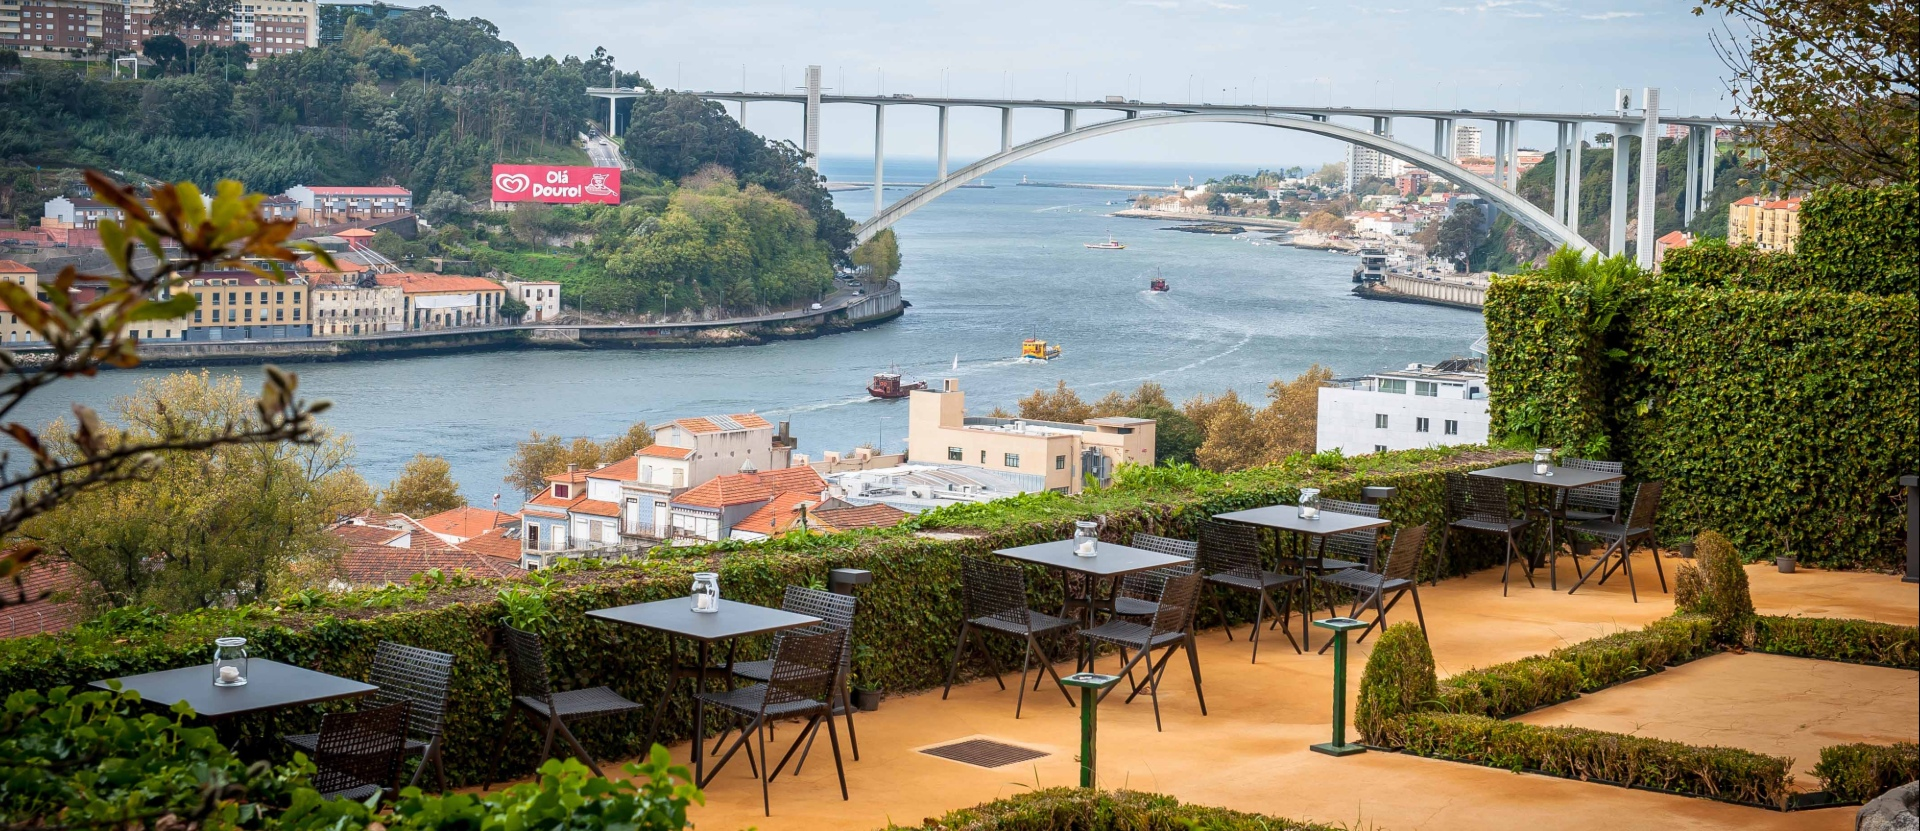 Michelin star restaurants: Antiqvvm what to do in porto What to do in Porto: 48 hours in the Undefeated city aad7366de6c9cc67f59b2f9e3ffafd74